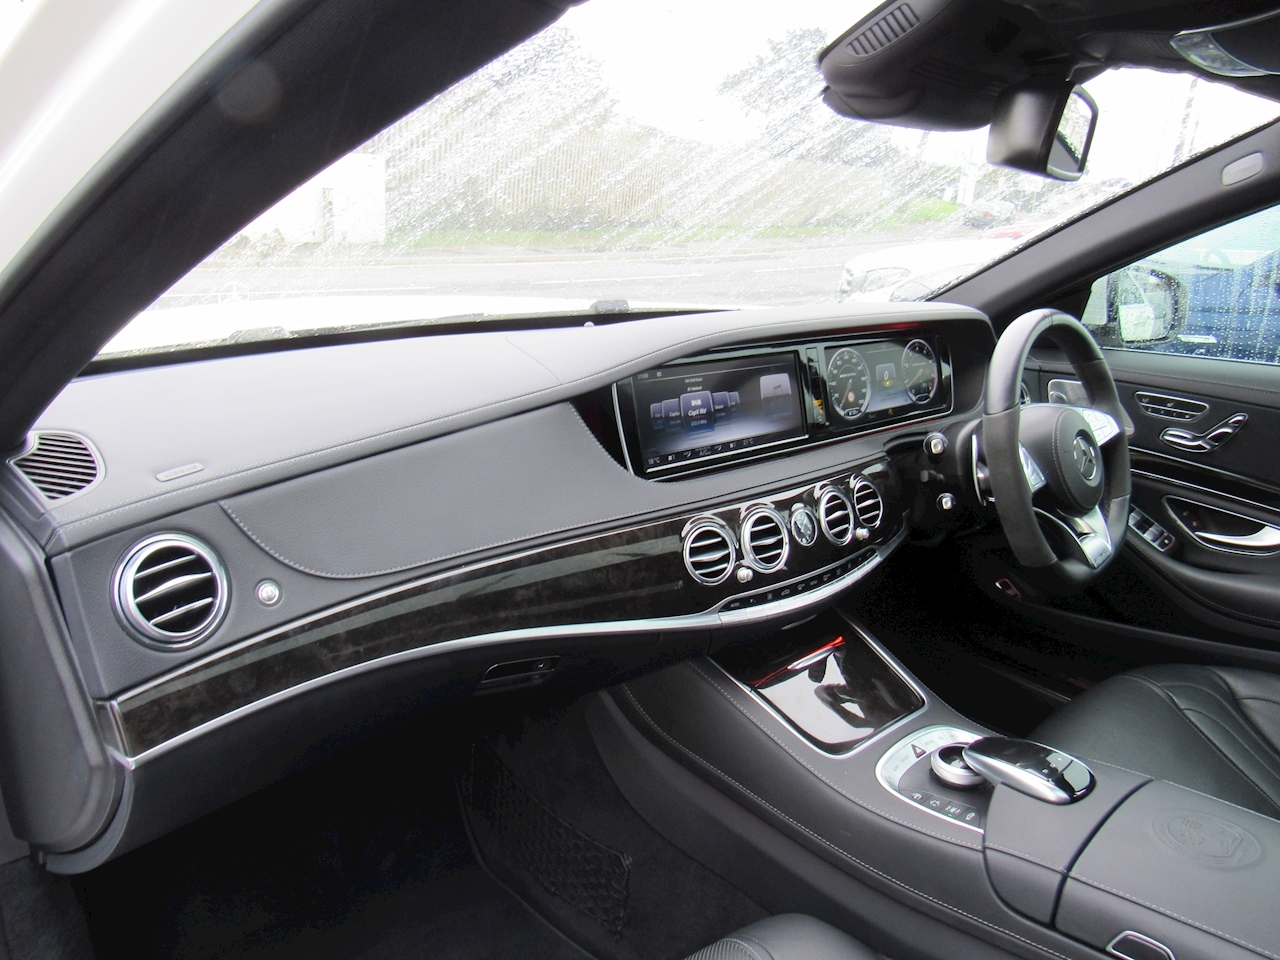 Mercedes-Benz S Class S63 Amg L Executive Saloon 5.5 Automatic Petrol